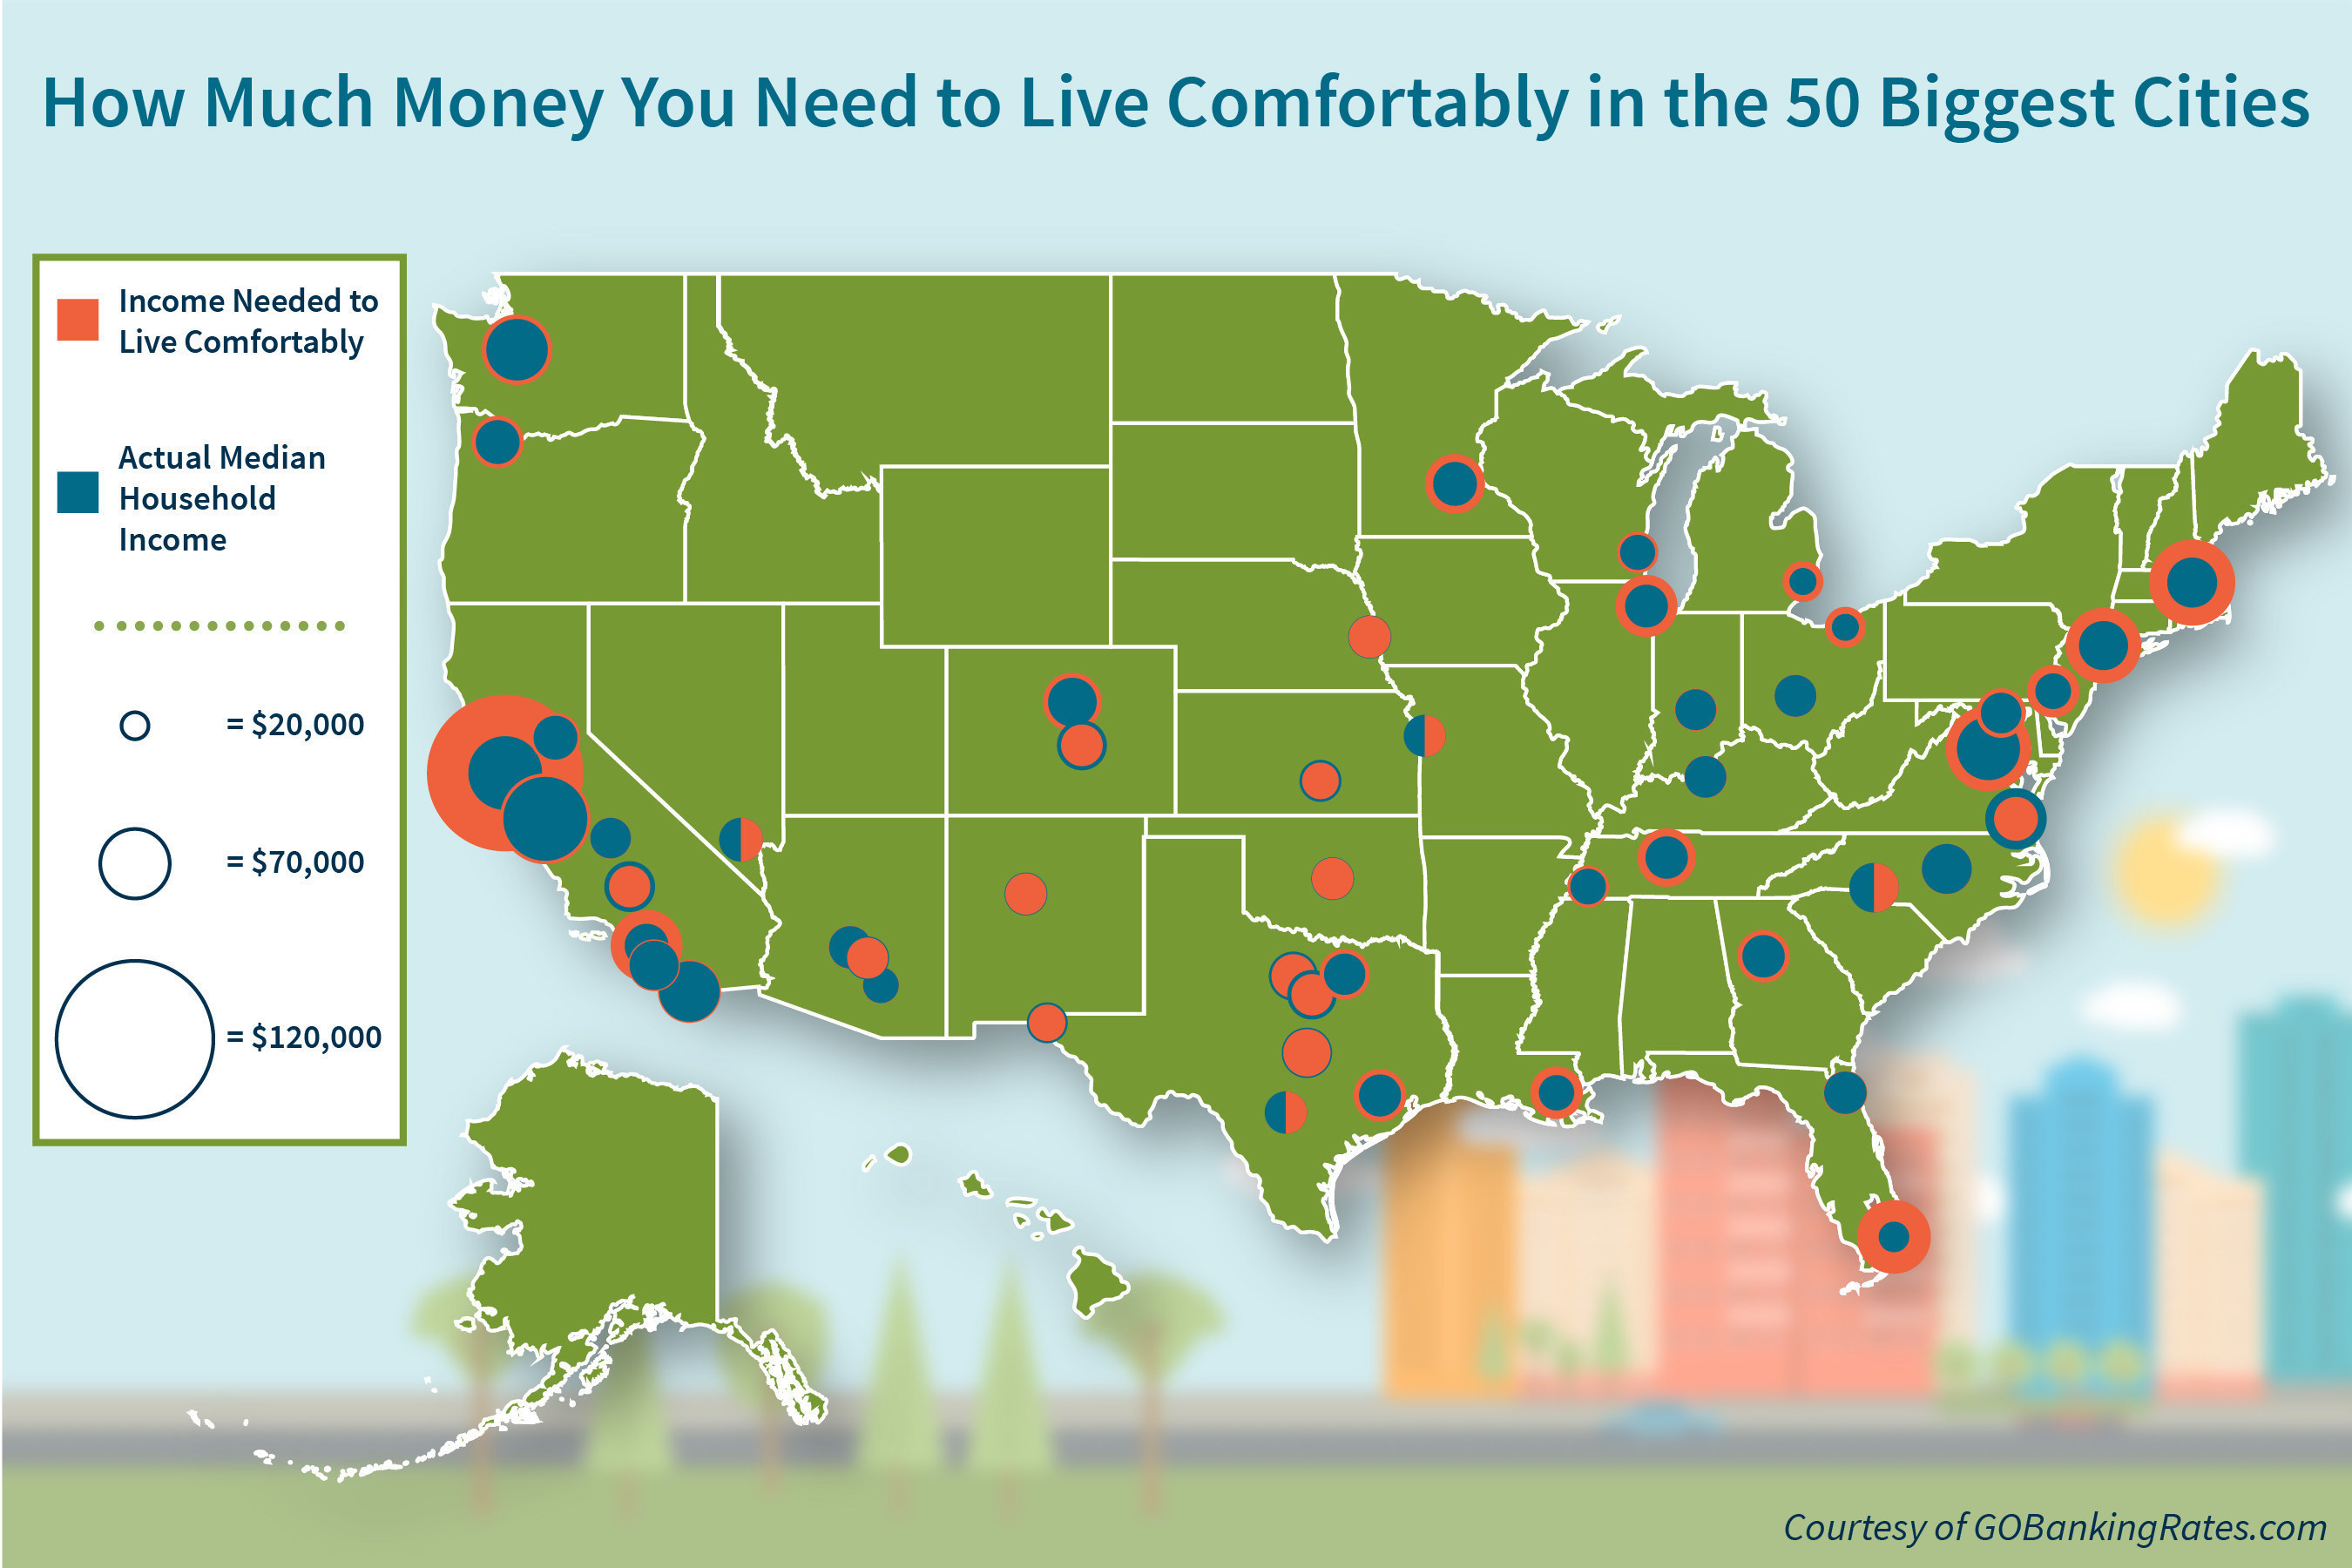 Latest GOBankingRates study finds how much money you need to live comfortably in the 50 biggest cities.